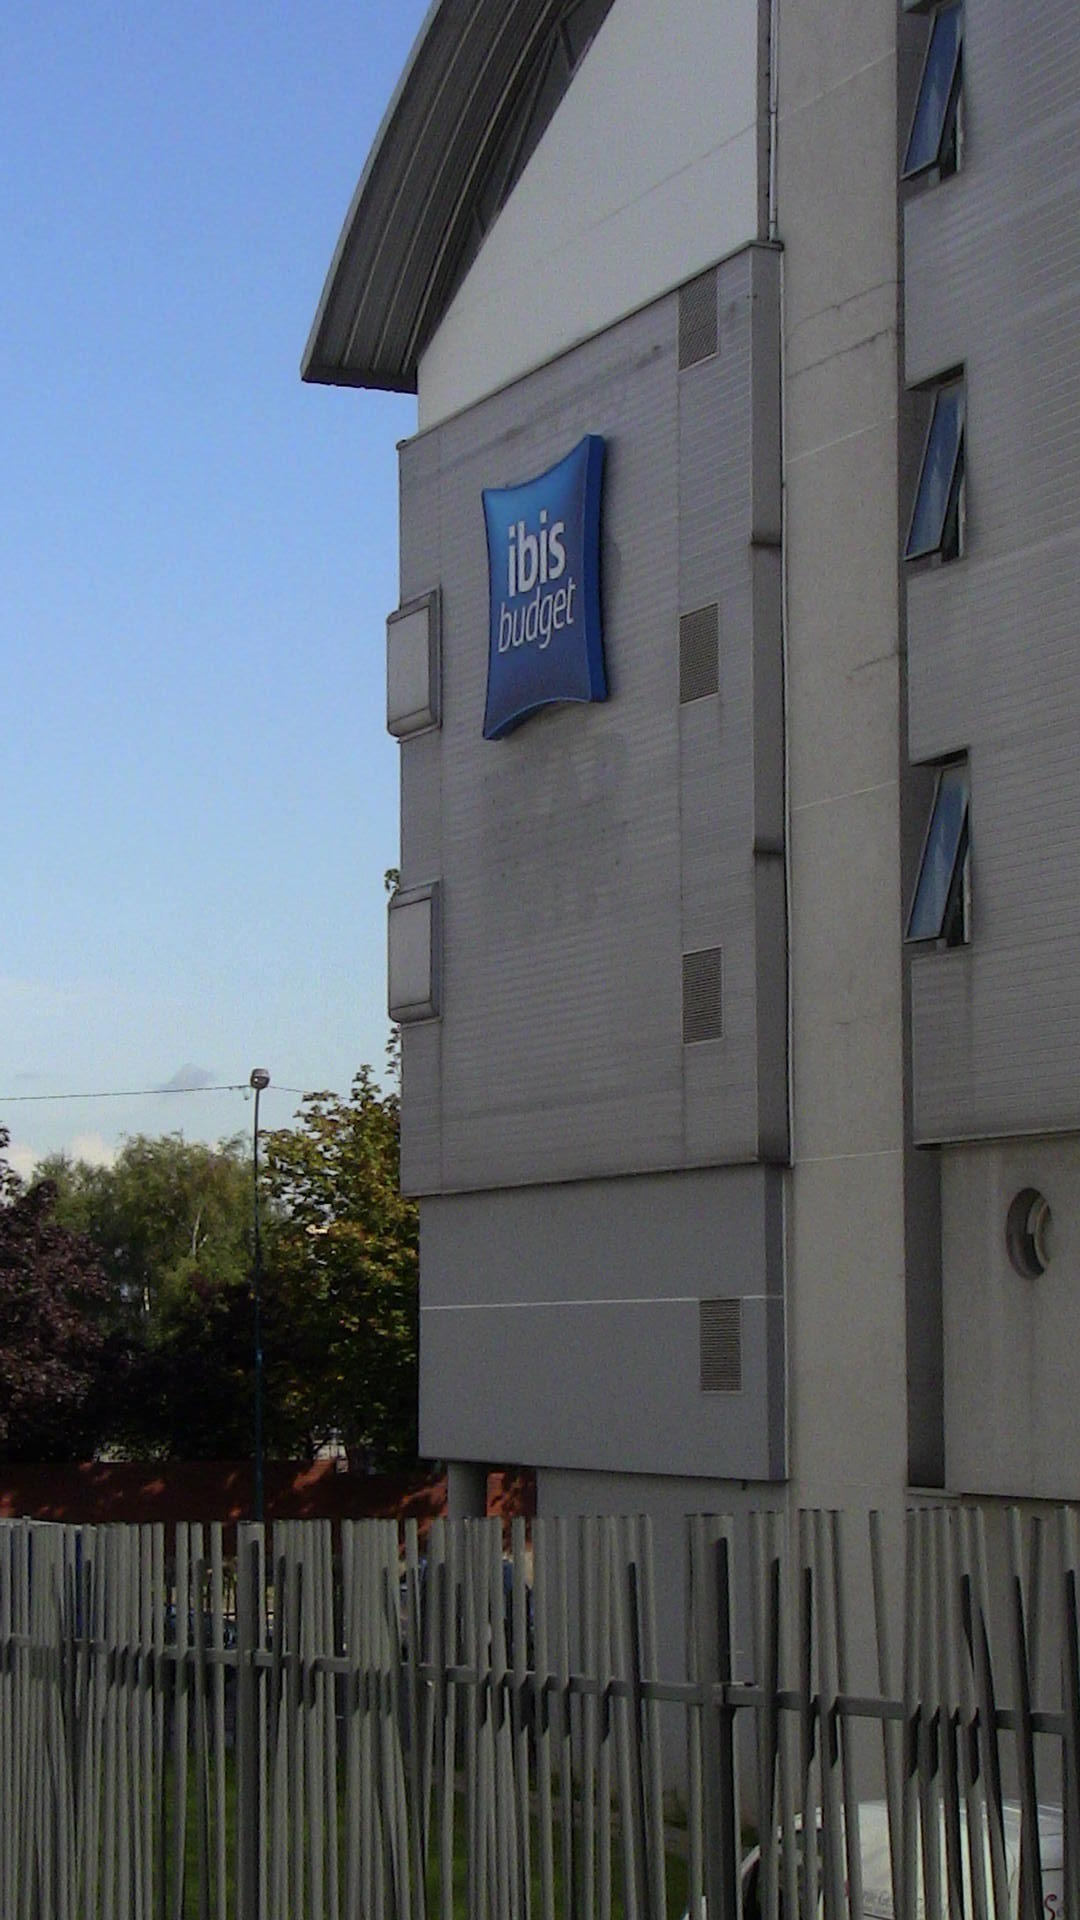 ibis budget hotel porte de pantin in pantin holidaycheck gro 223 raum frankreich